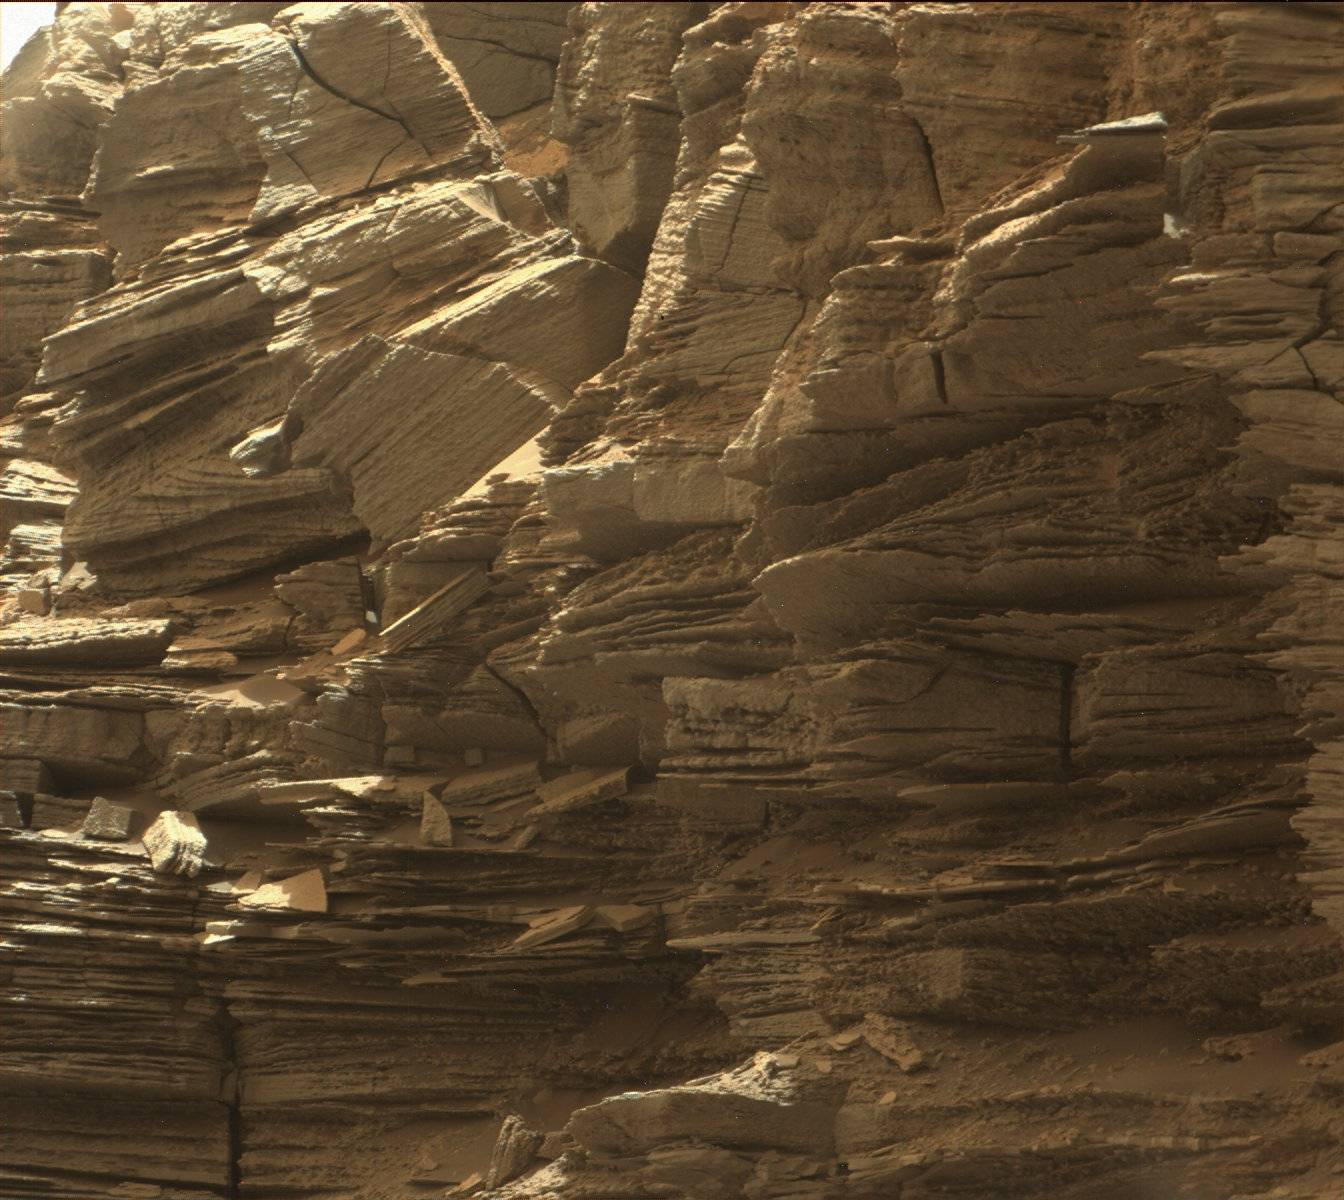 Rock layers in the Murray Buttes area in lower Mount Sharp